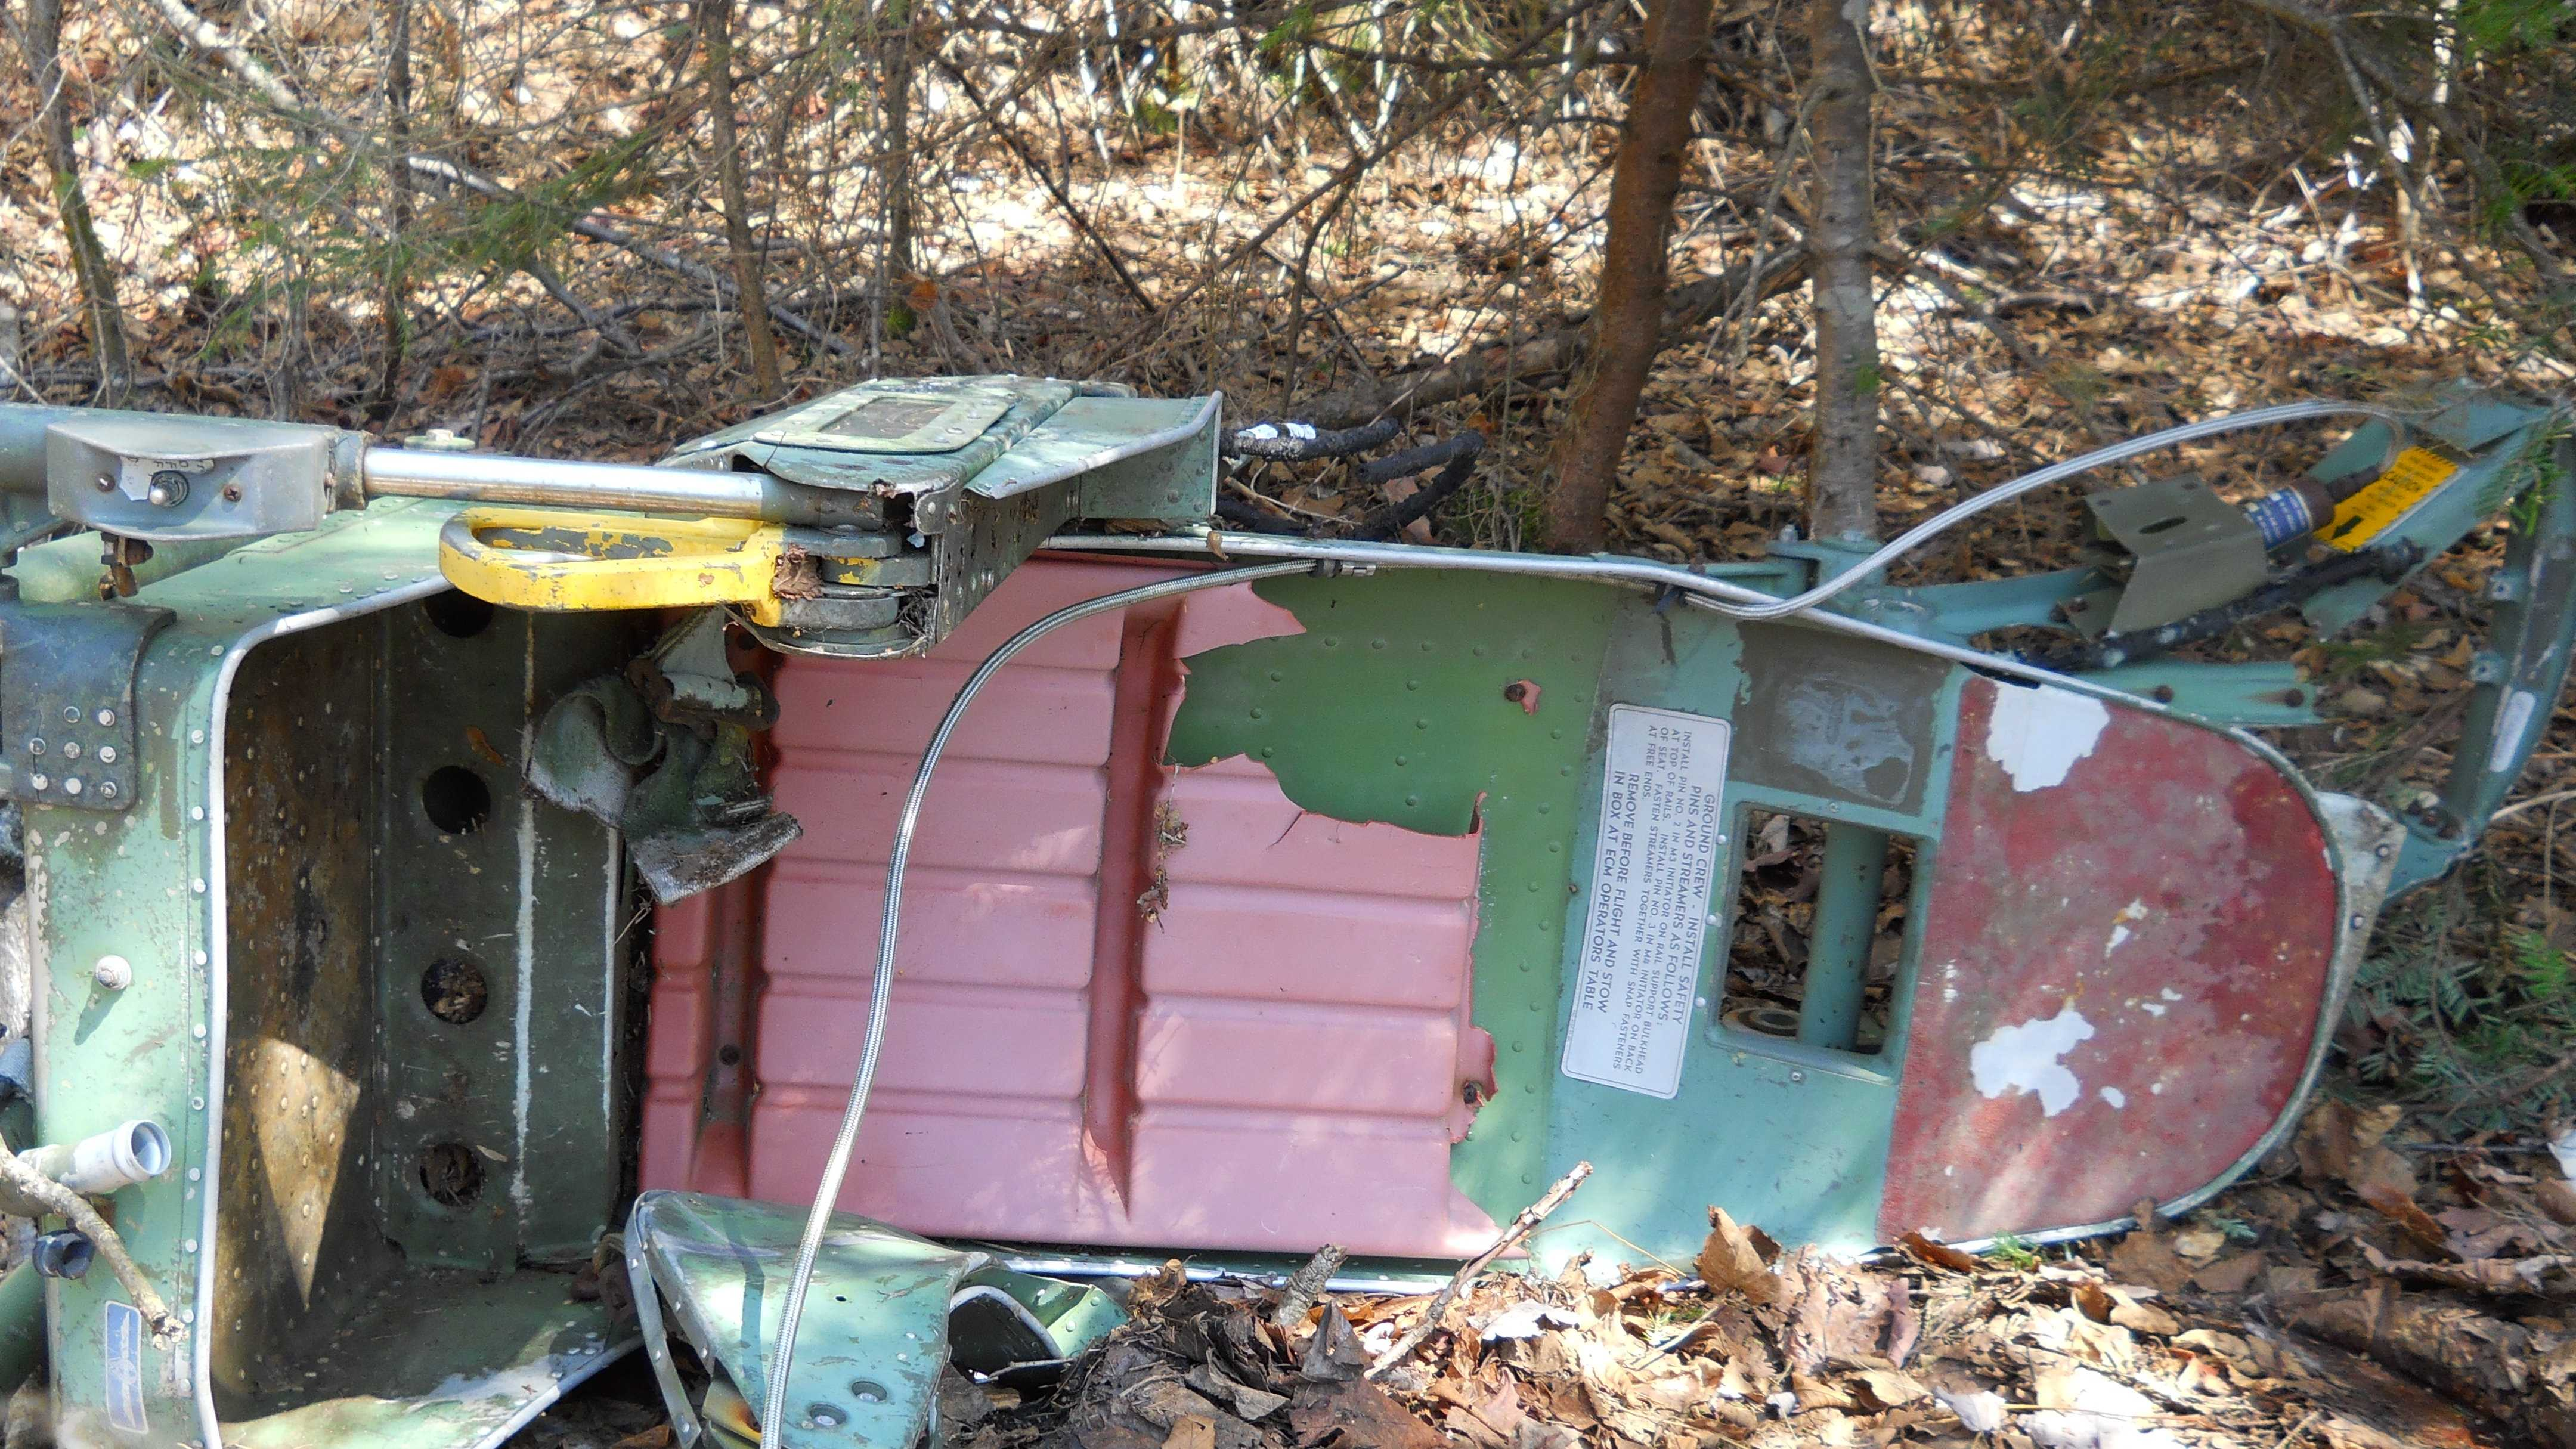 A forest ranger has found what's believed to be an ejection seat from a B-52 bomber that crashed on a western Maine mountain nearly 50 years ago, killing seven airmen